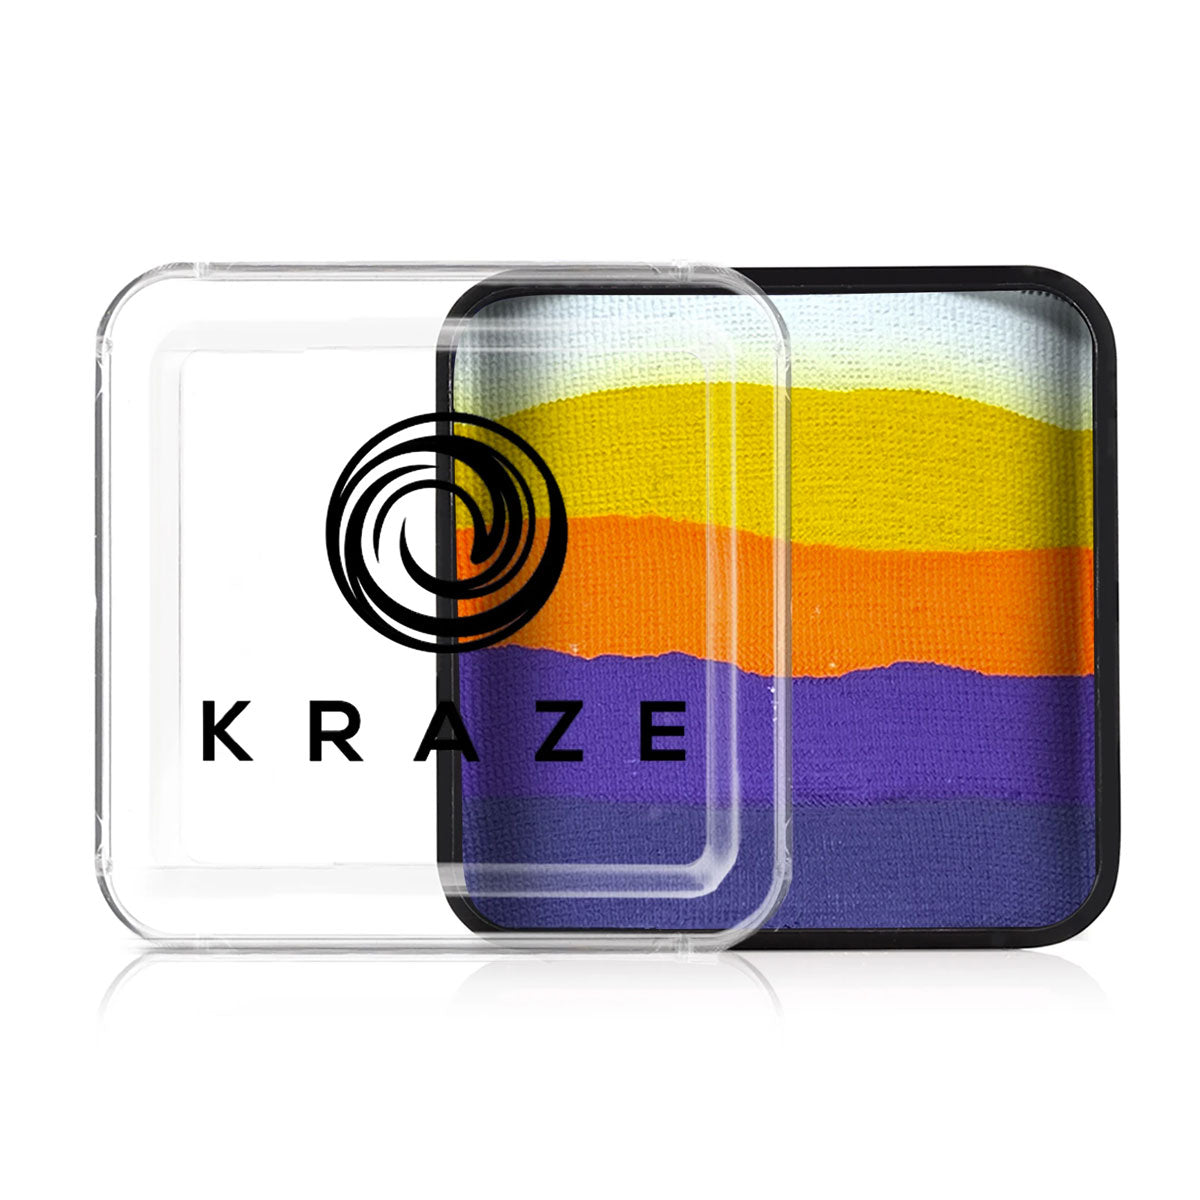 Sunset Dream Split Cake Dome 25g - Kraze